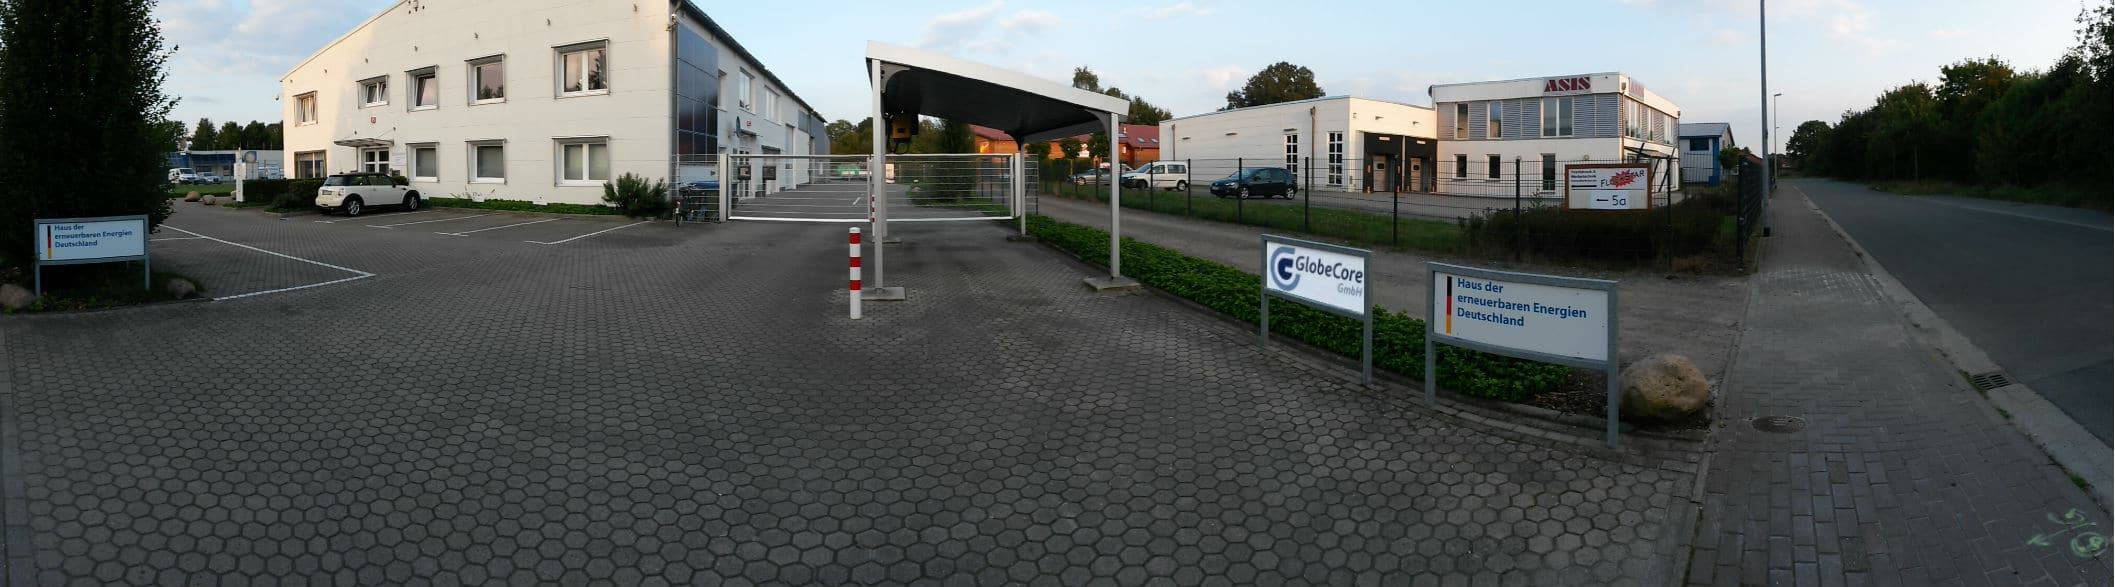 globecore-oldenburg-germany-min Capacitance Test